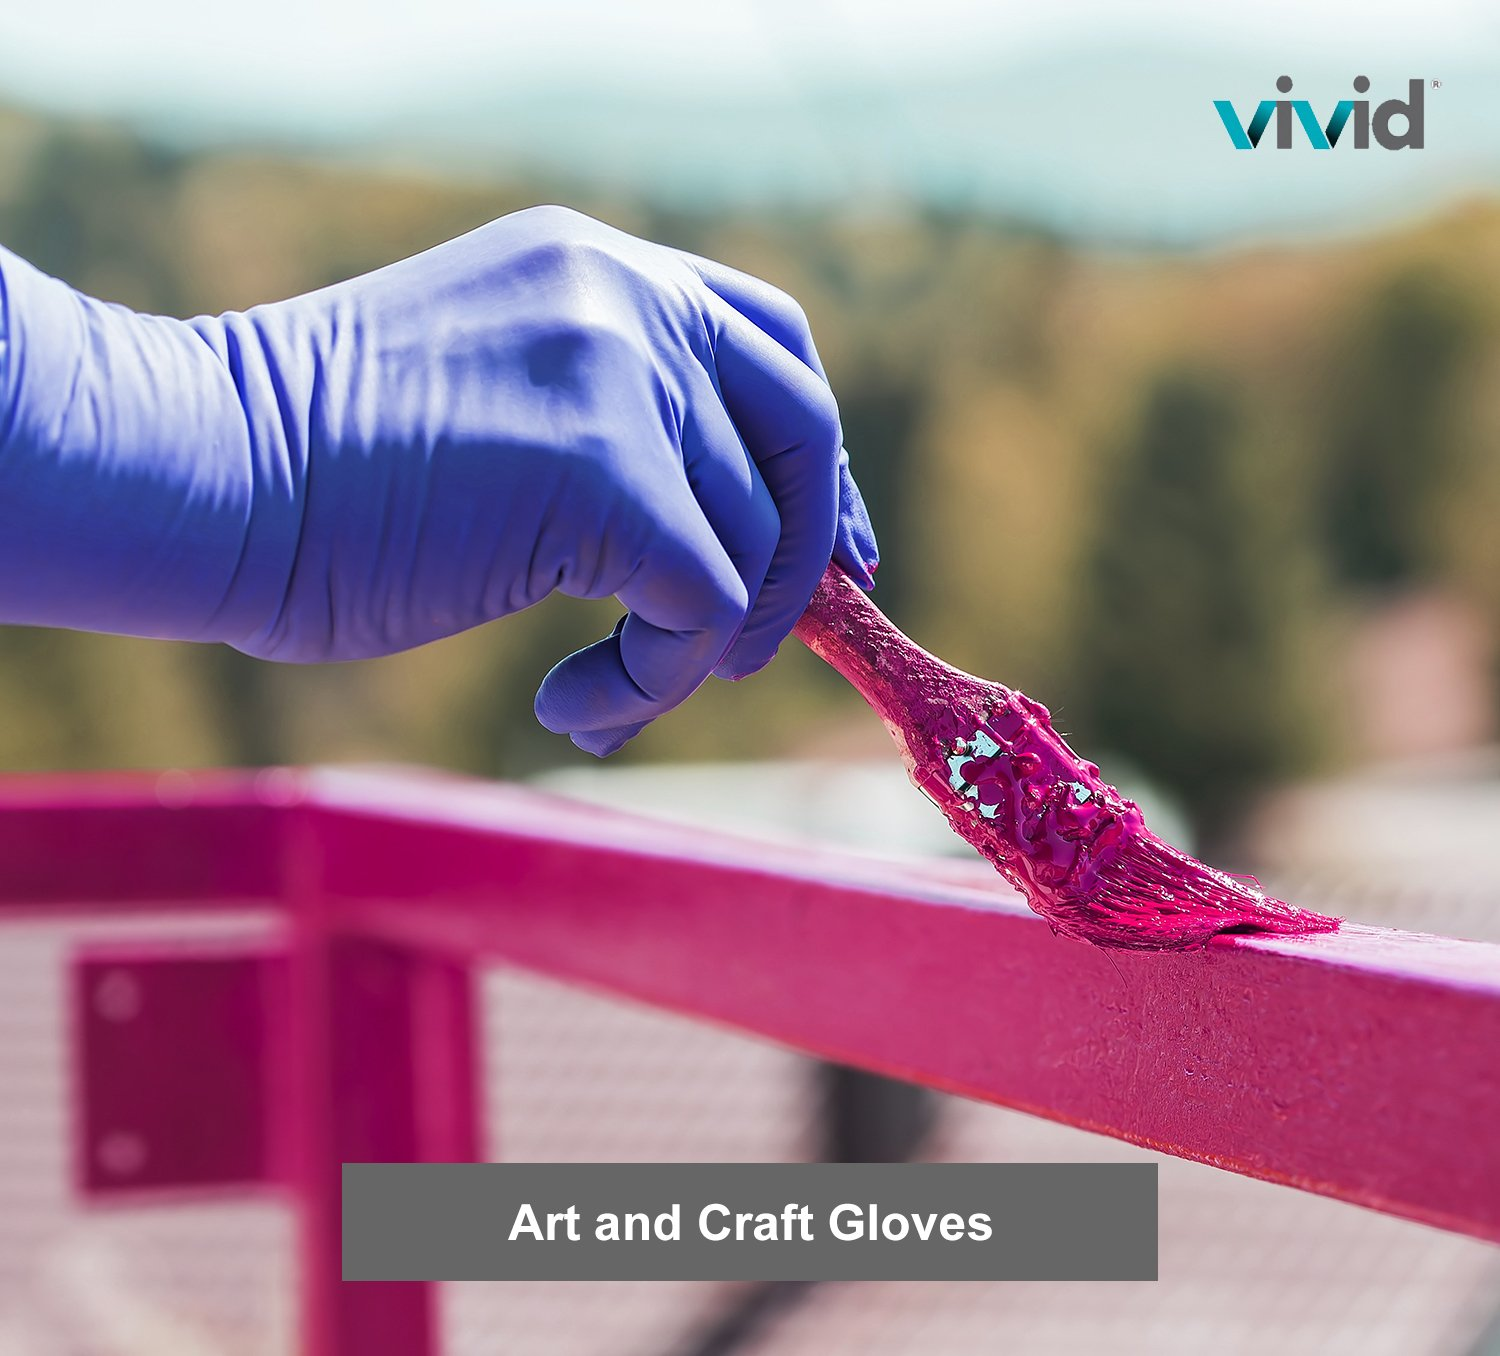 VIVID StyleTouch Purple Nitrile Latex Non Sterile Gloves – for Home, Medical, Professional Use – Disposable – Food Safe, Rubber Free – 2.7 mil, Pack of 300 (Large), StyleTouch by Vivid (Image #7)